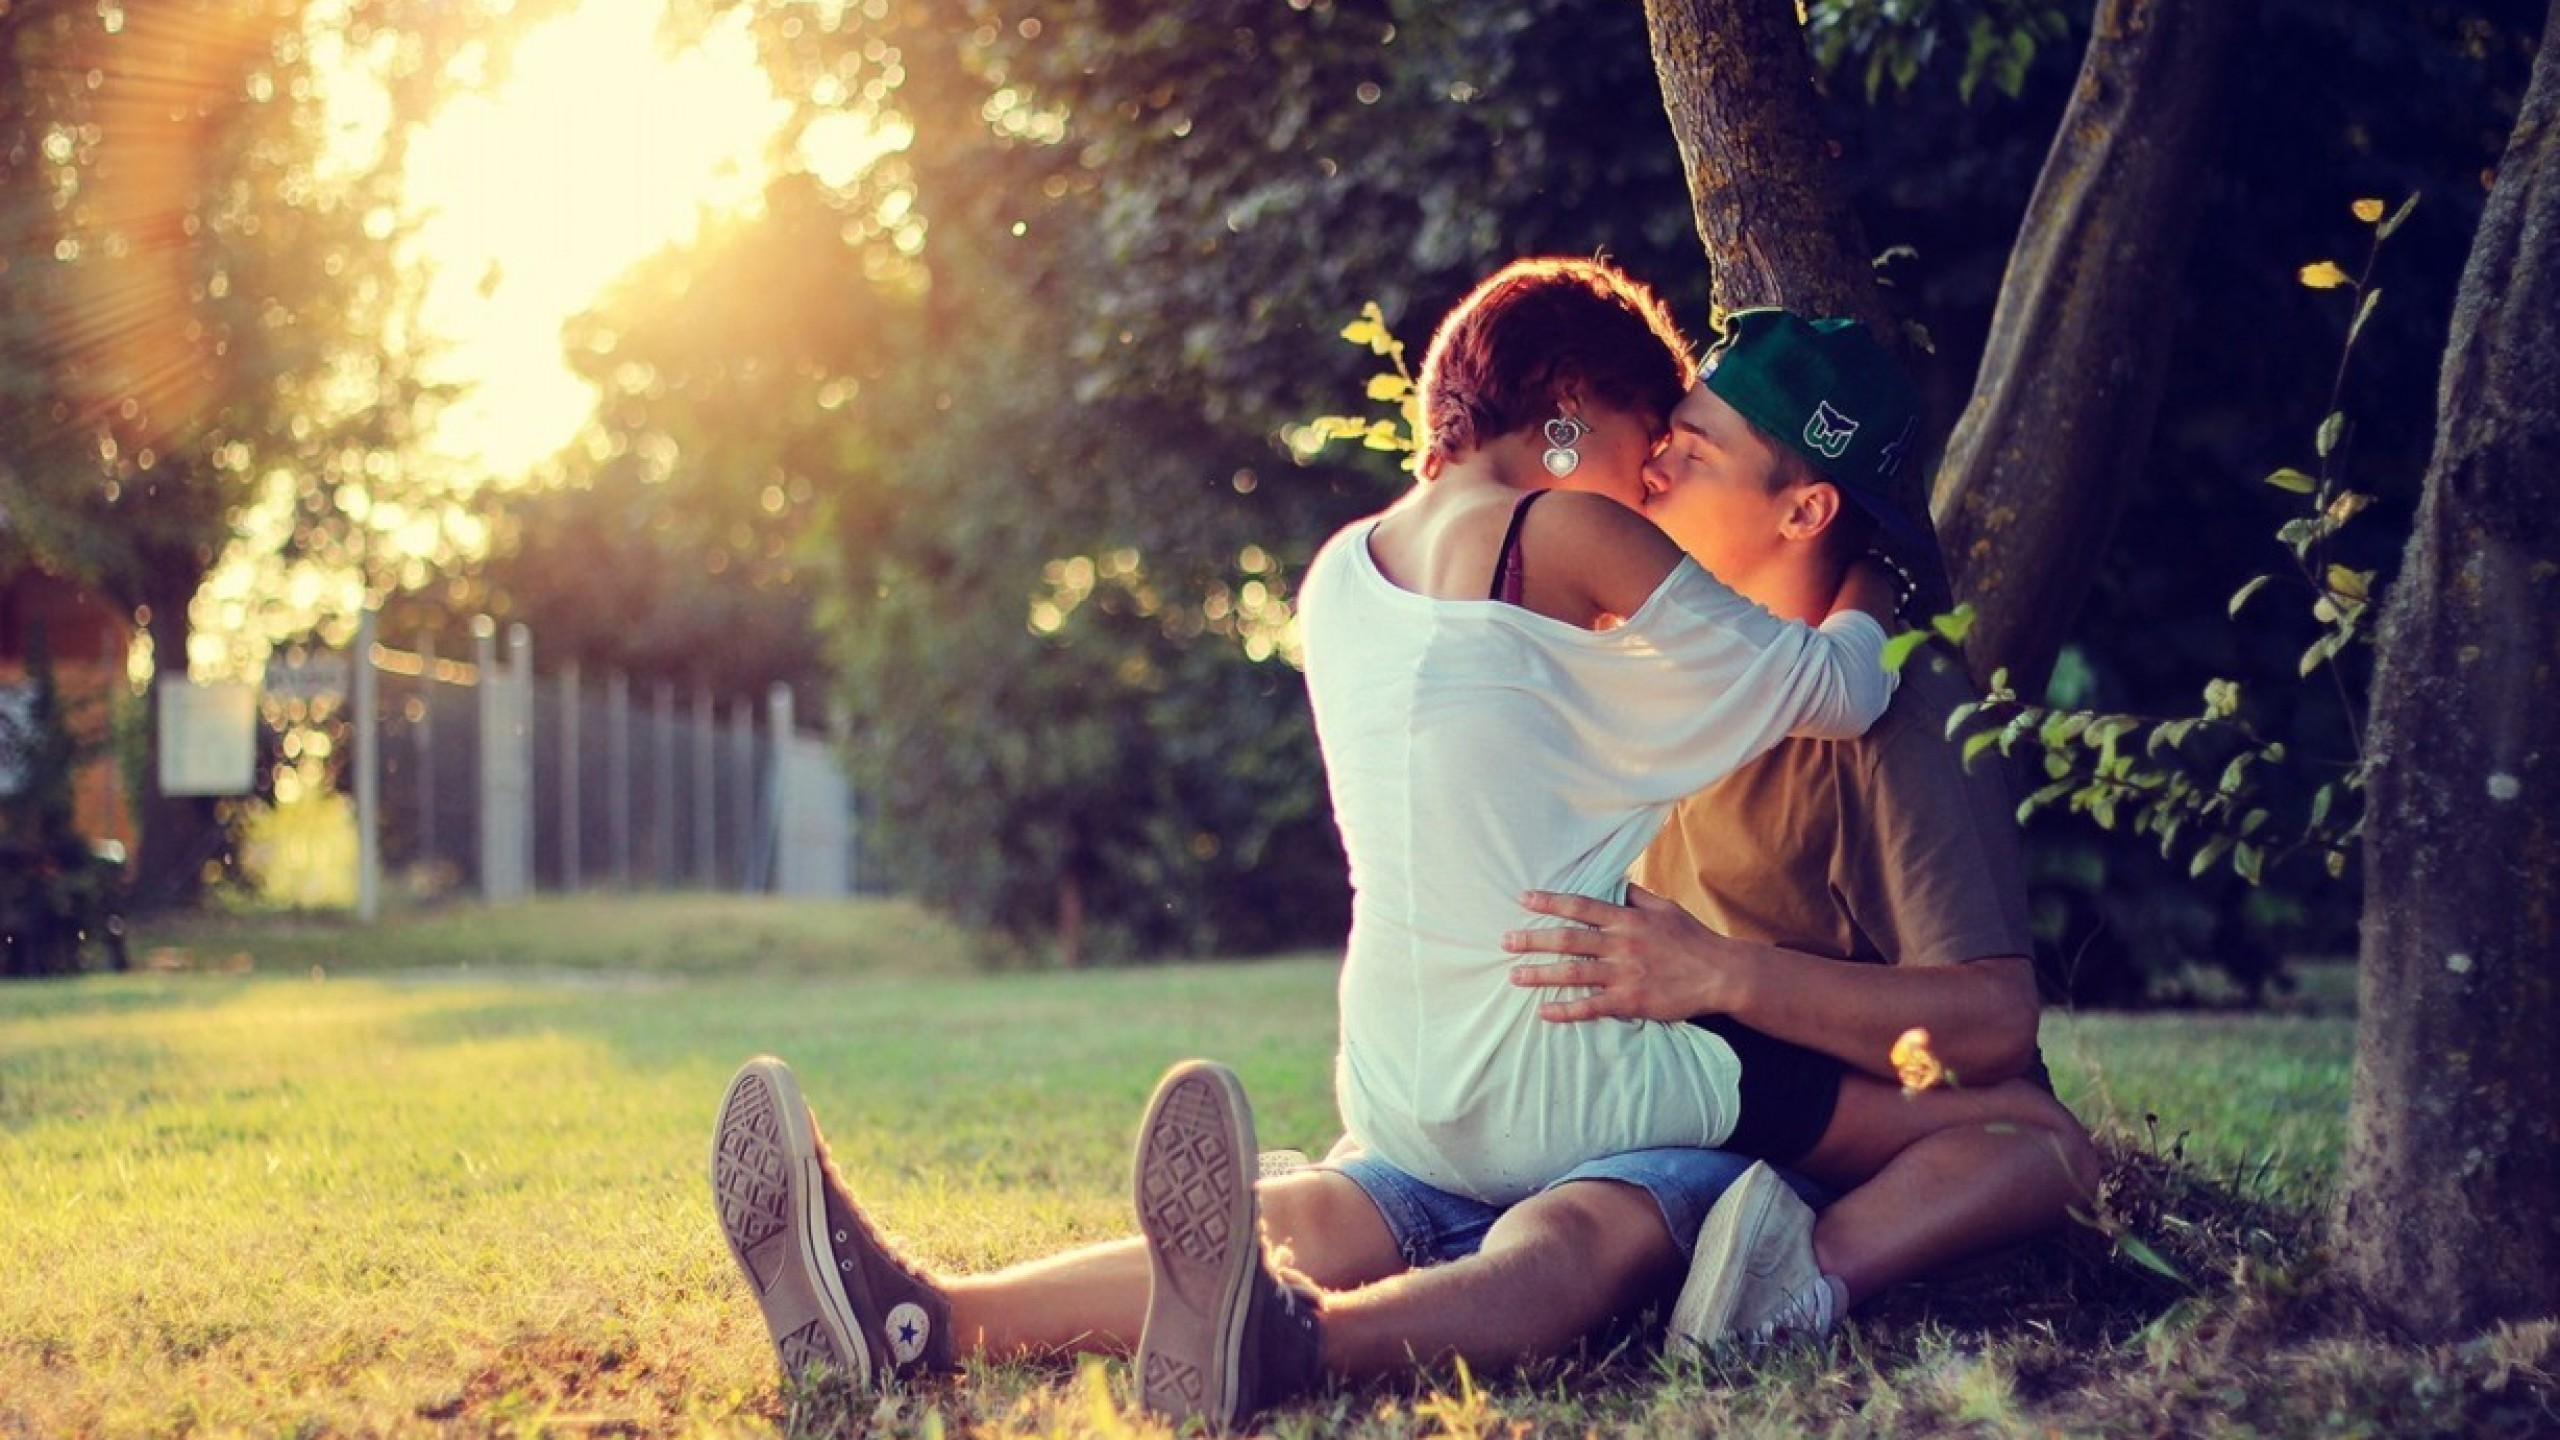 Kissing Wallpapers Hd 2018 65 Images